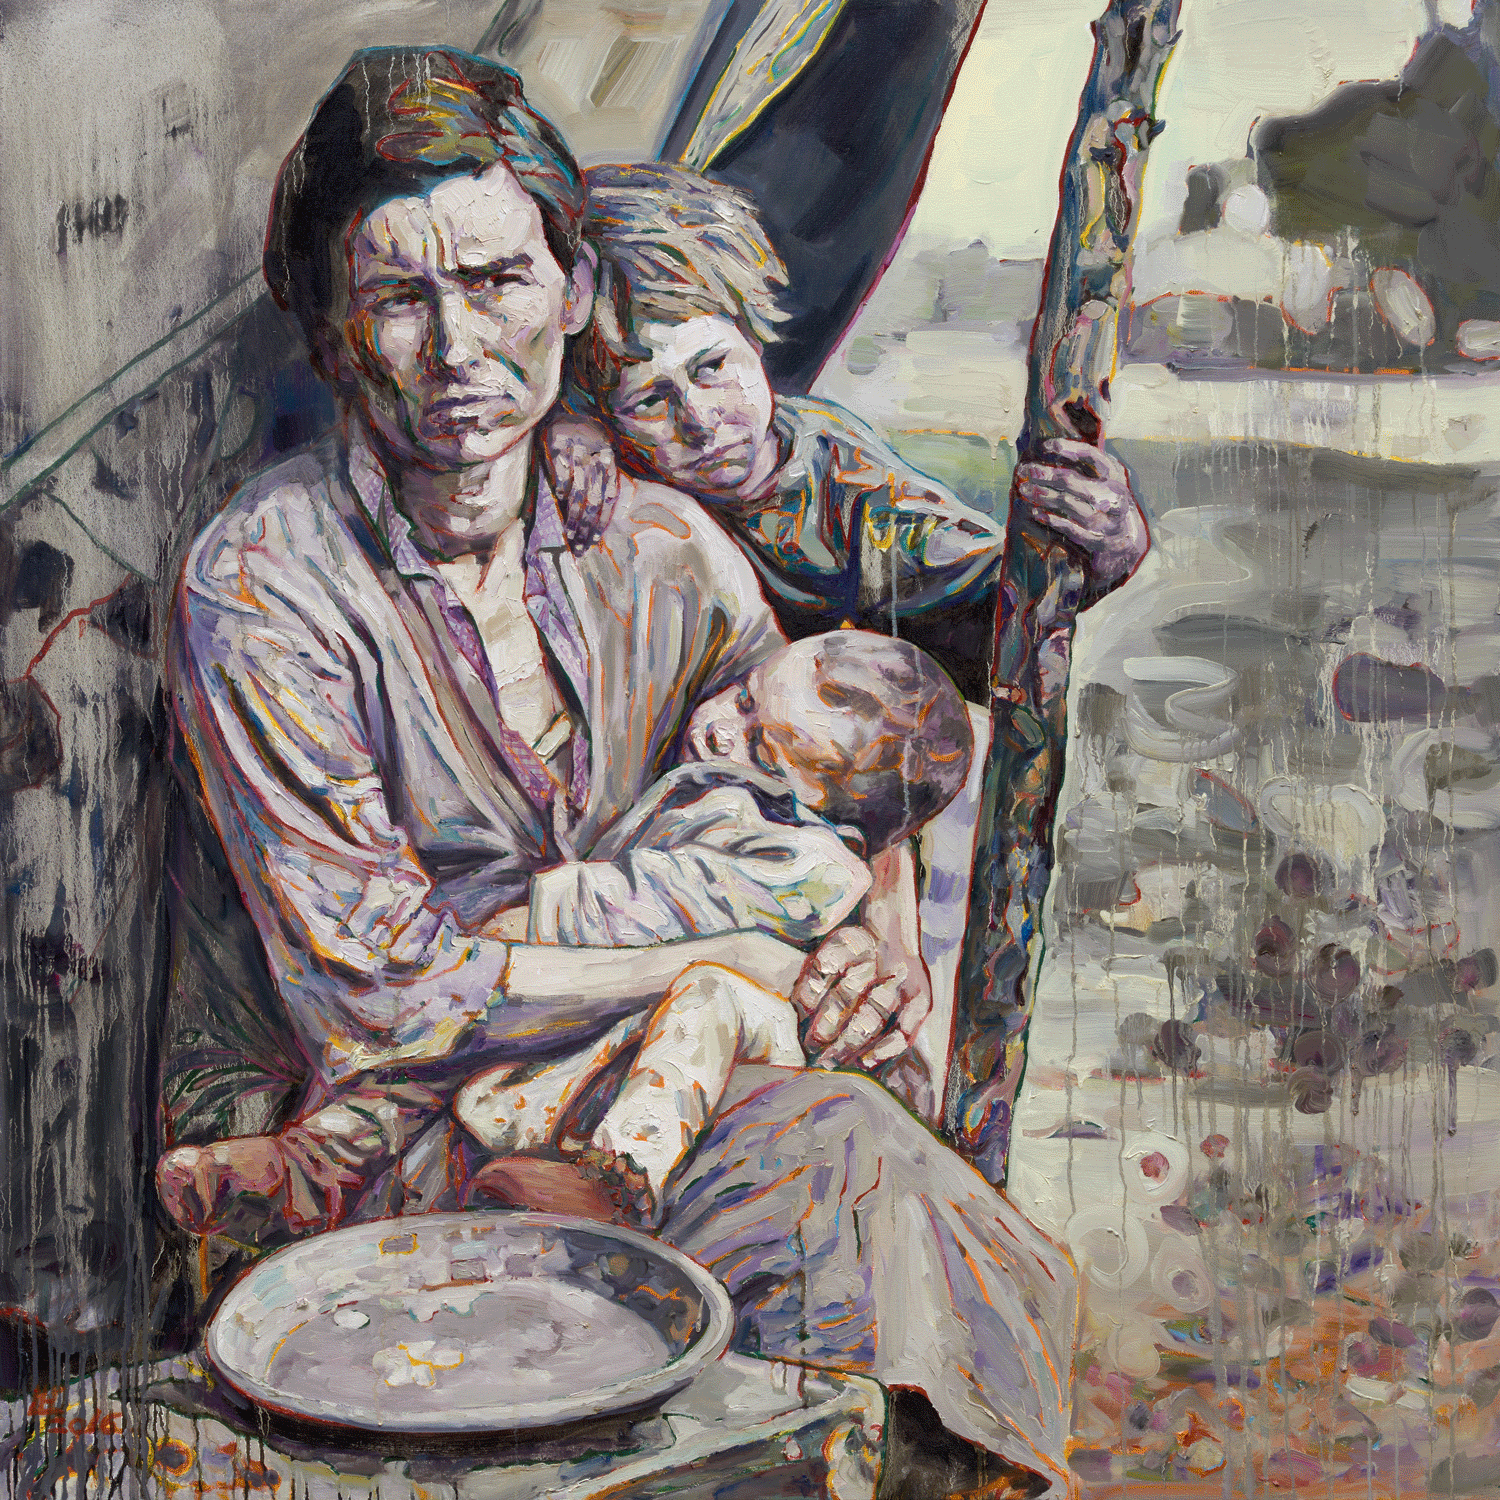 Migrant Mother II, 2016, Oil on canvas, 60 x 60  inches